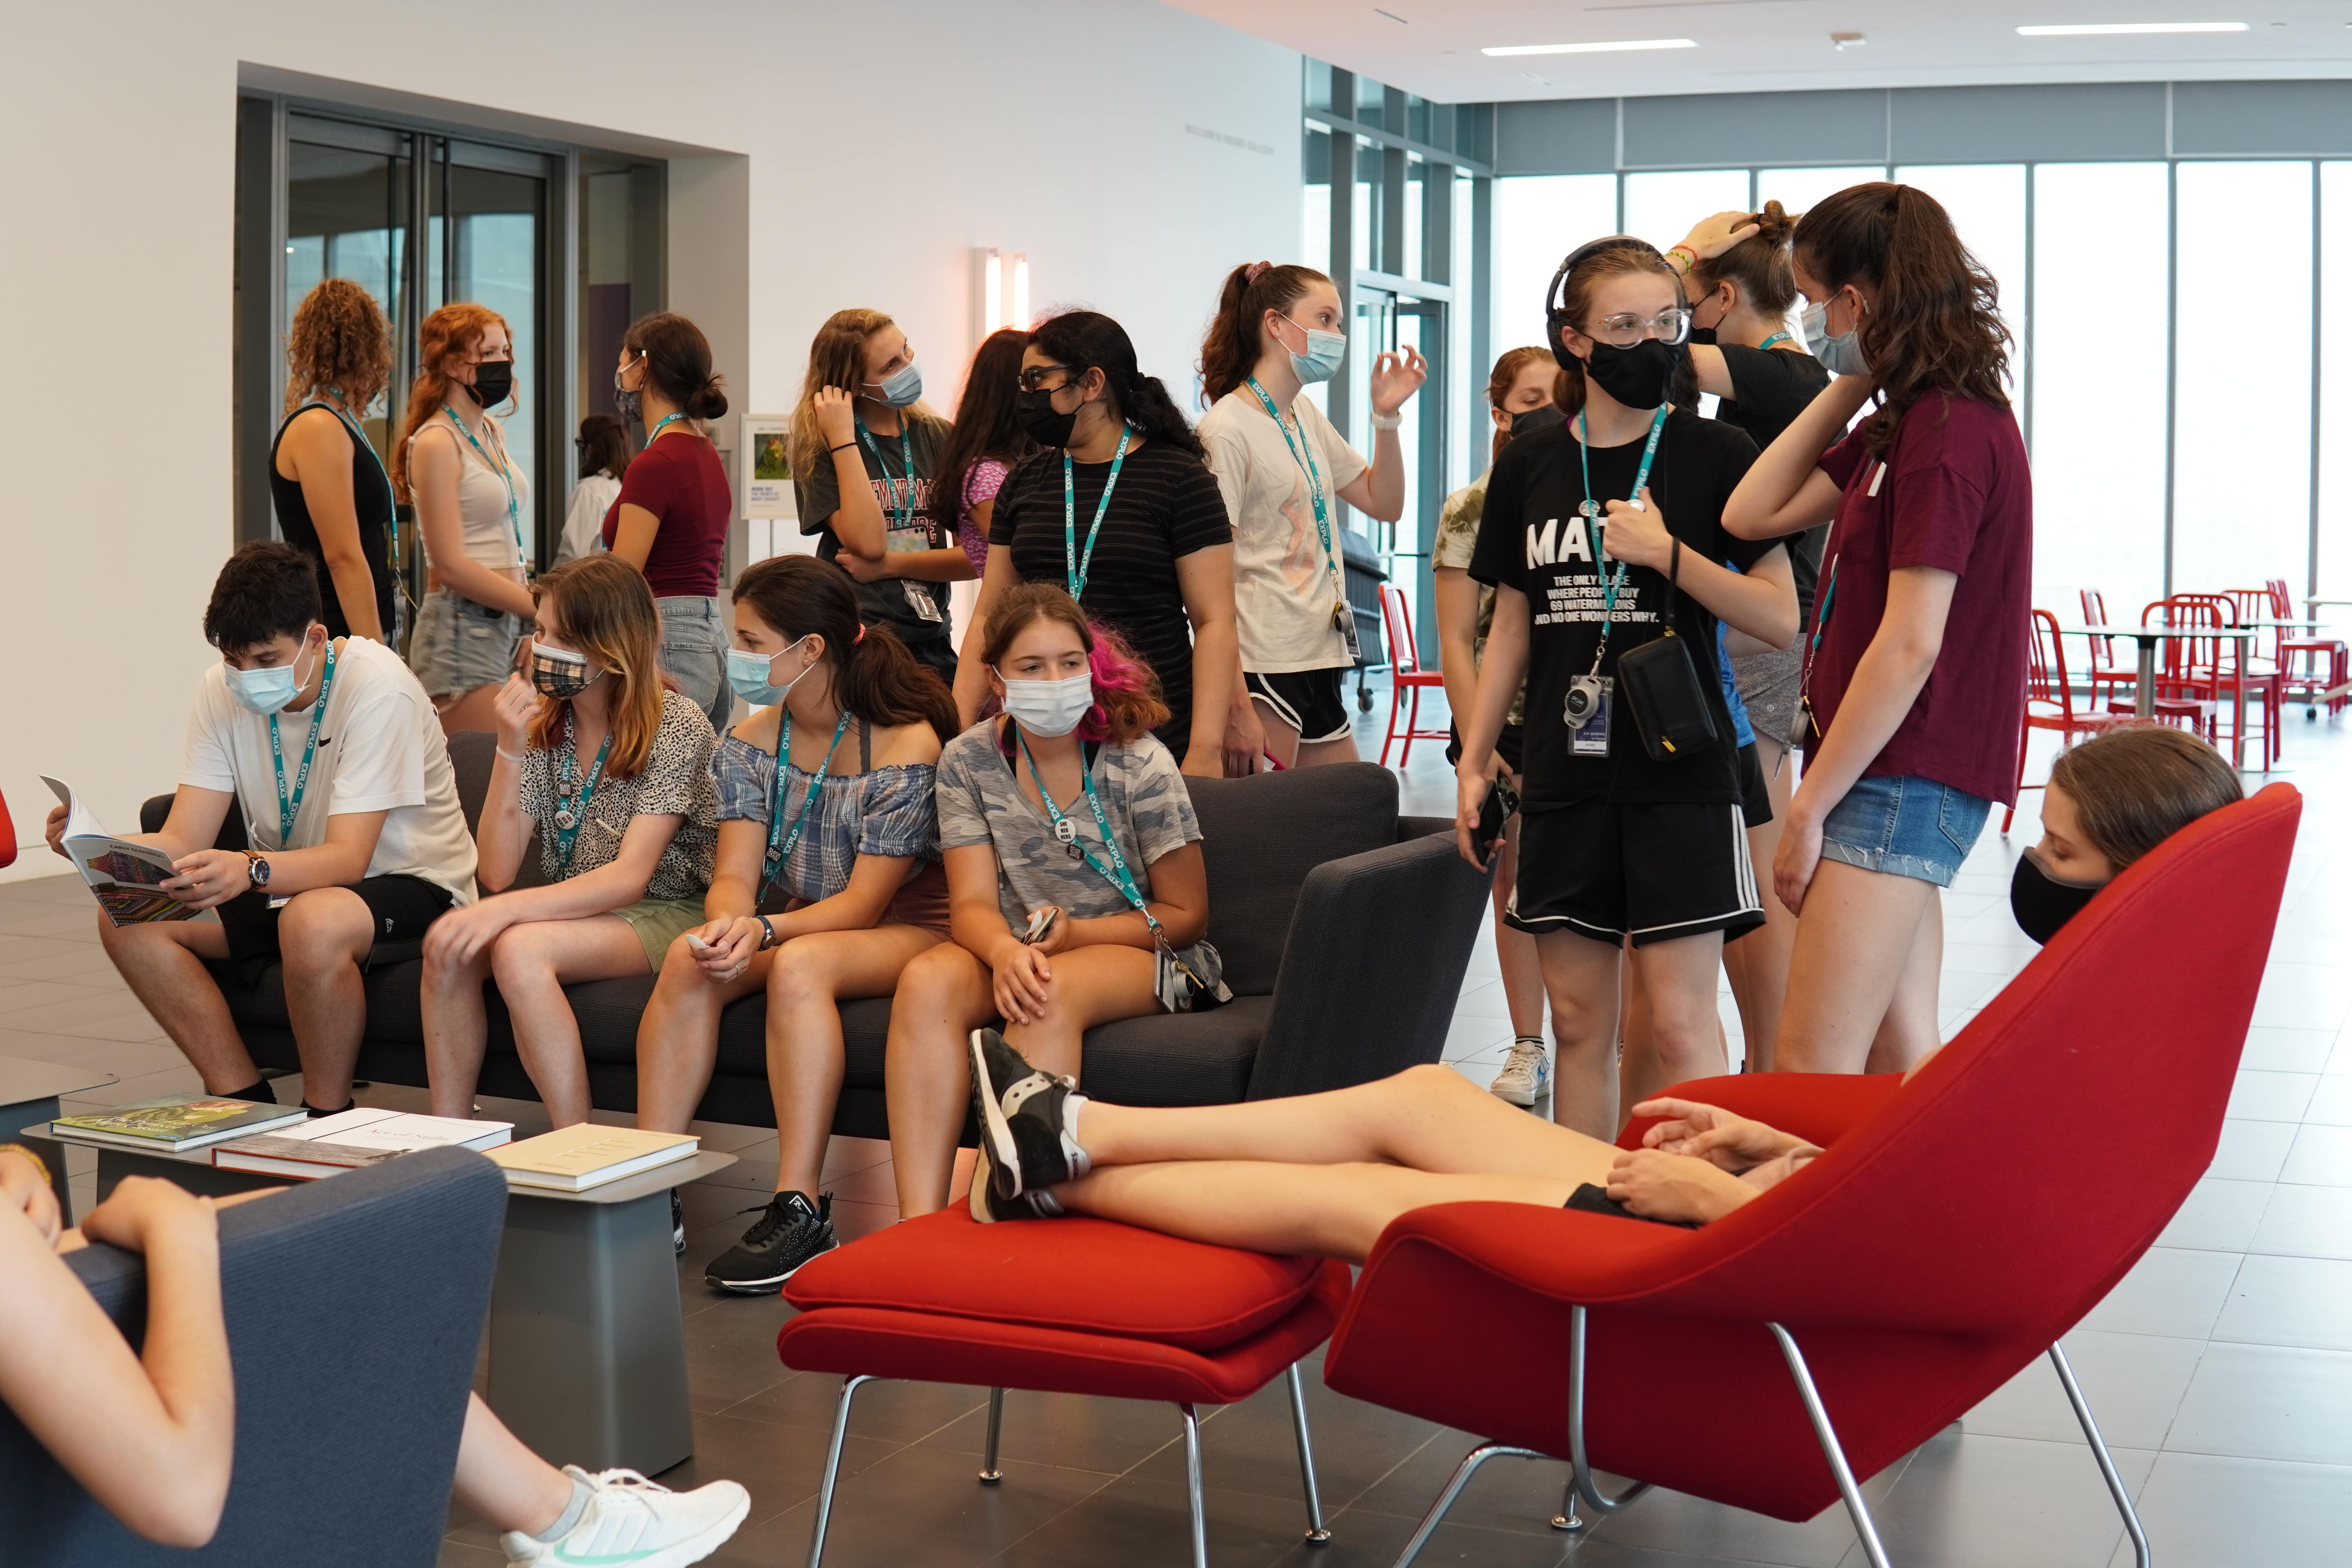 Students meet in the entrance to the Colby College Museum of Art and sit on the couches.